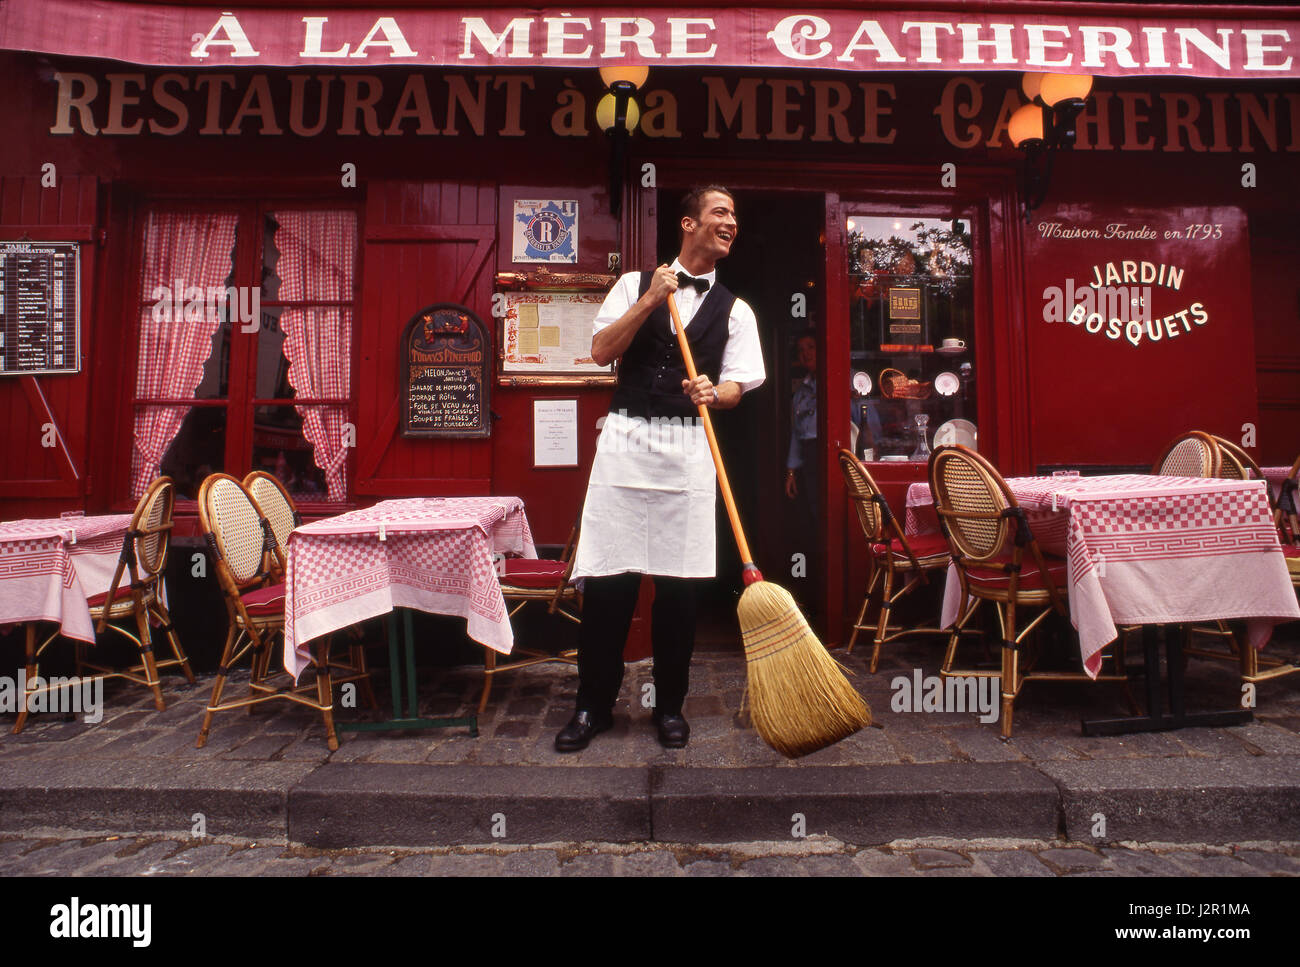 PARIS WAITER MONTMARTRE Typical French waiter, sweeping  preparations at renowned Parisian restaurant 'A La Mere Stock Photo